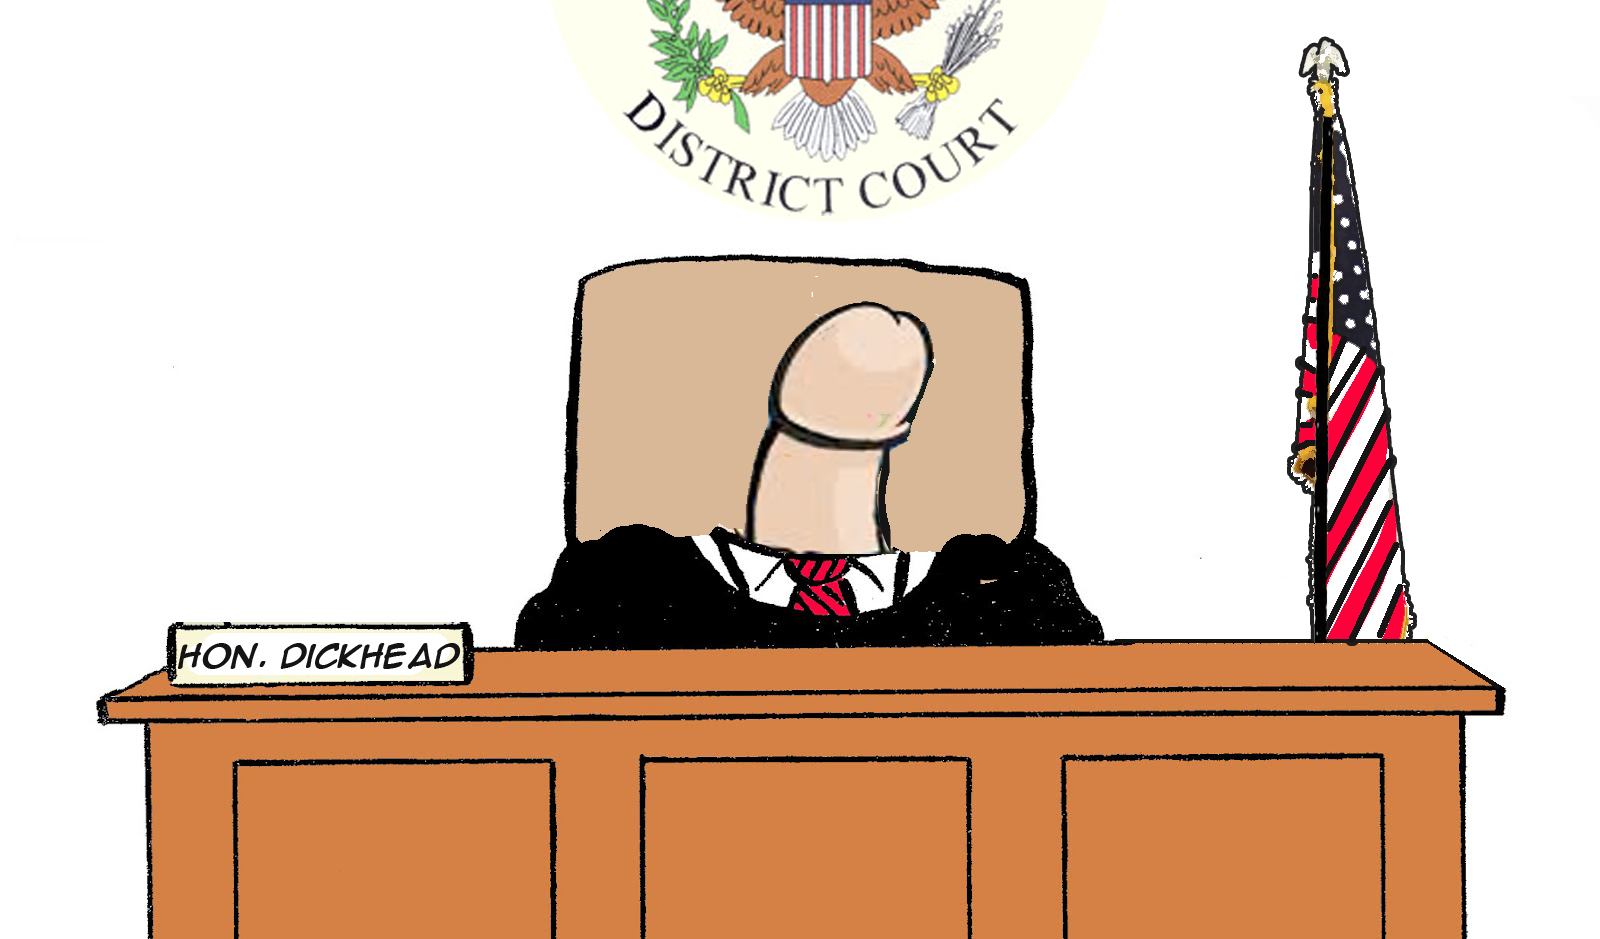 Judge Dickhead